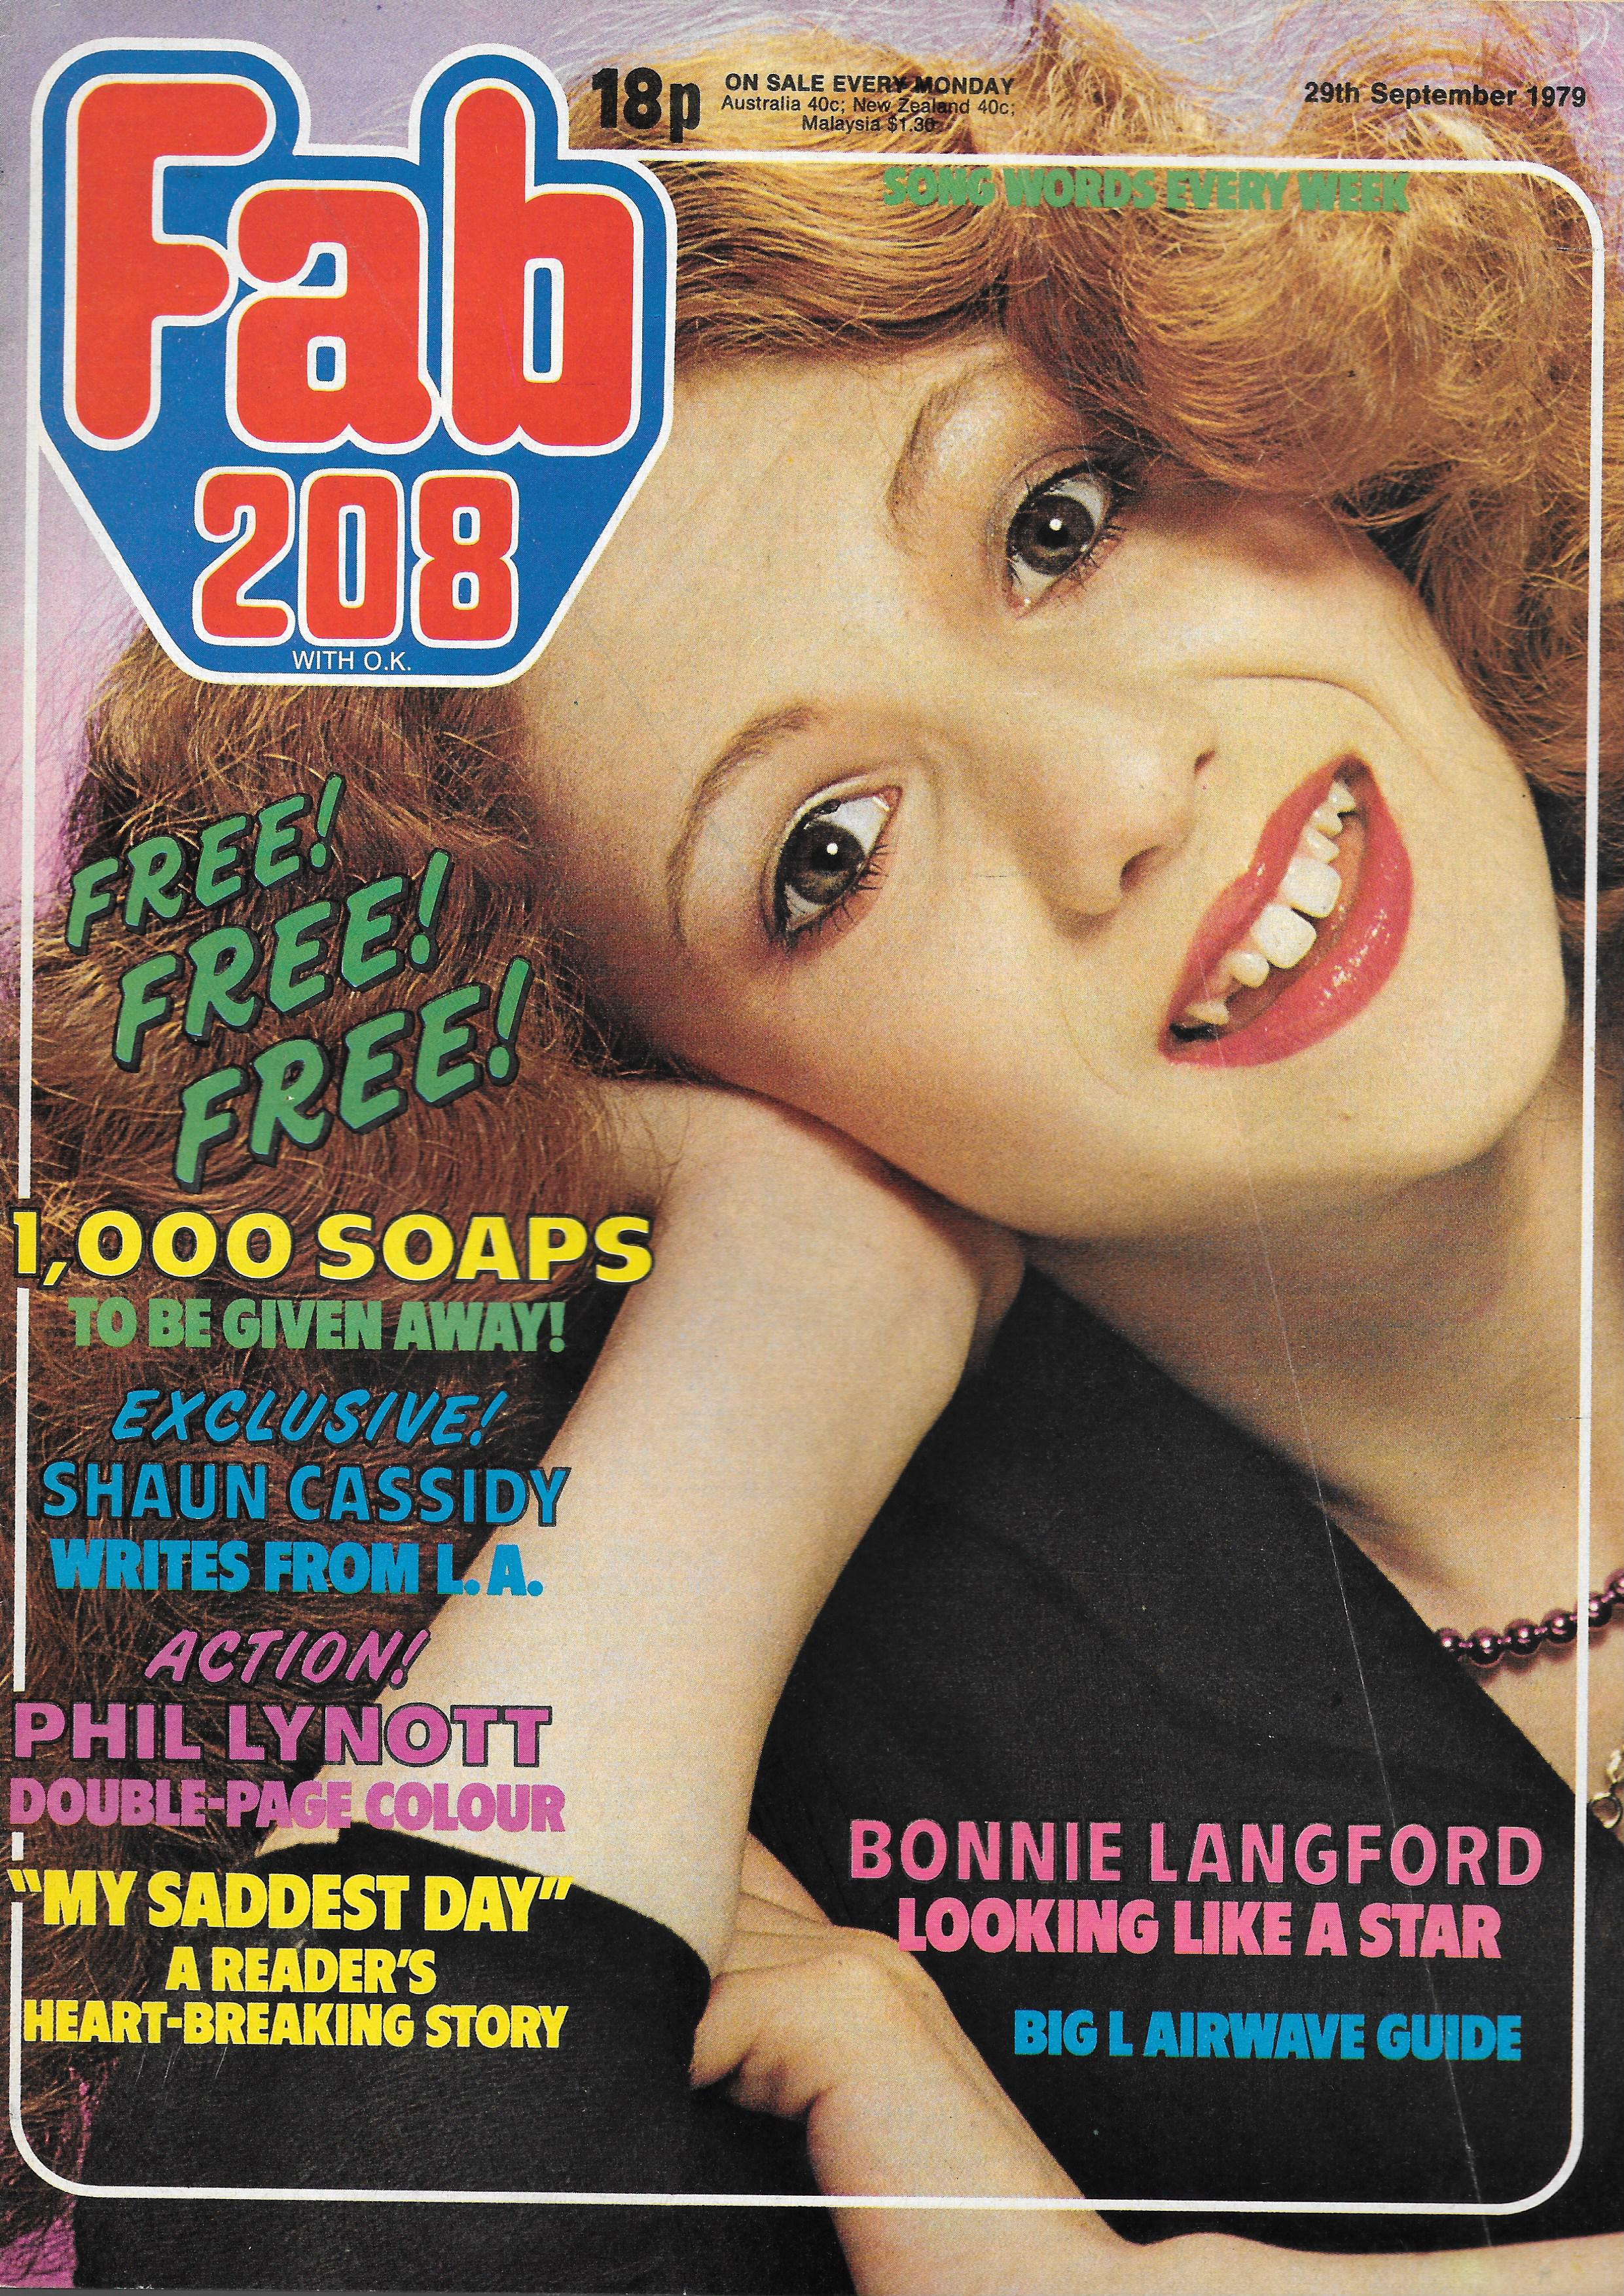 FAB 208 UK MUSIC MAGAZINE SEPTEMBER 29TH 1979 Vintage and Modern Birthday  Issues Tilleys Sheffield